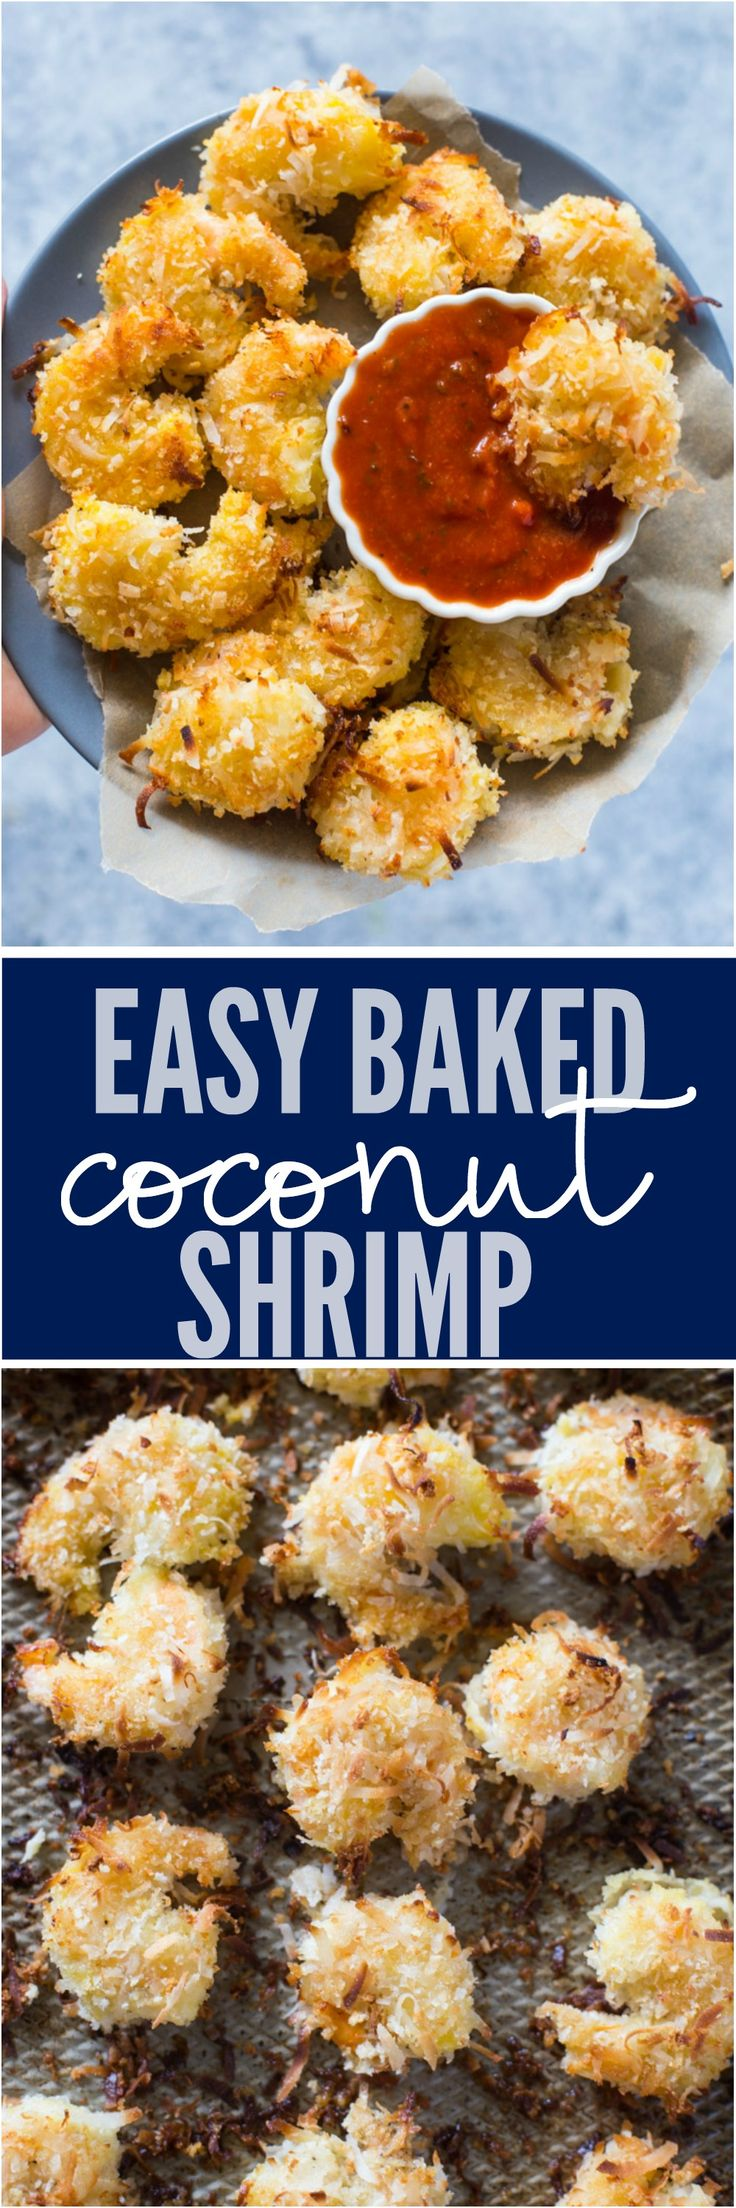 10 large shrimp, peeled and deveined (tails off if its easier for your toddler)